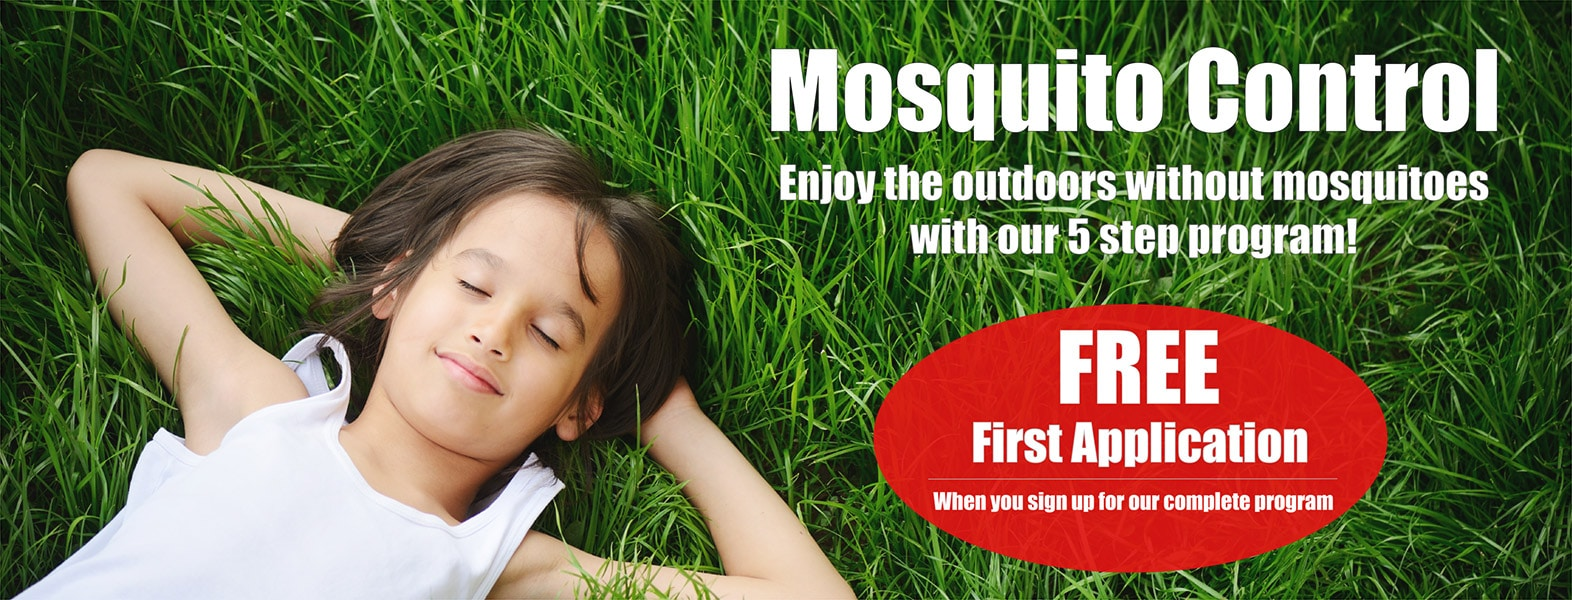 spring touch mosquito control